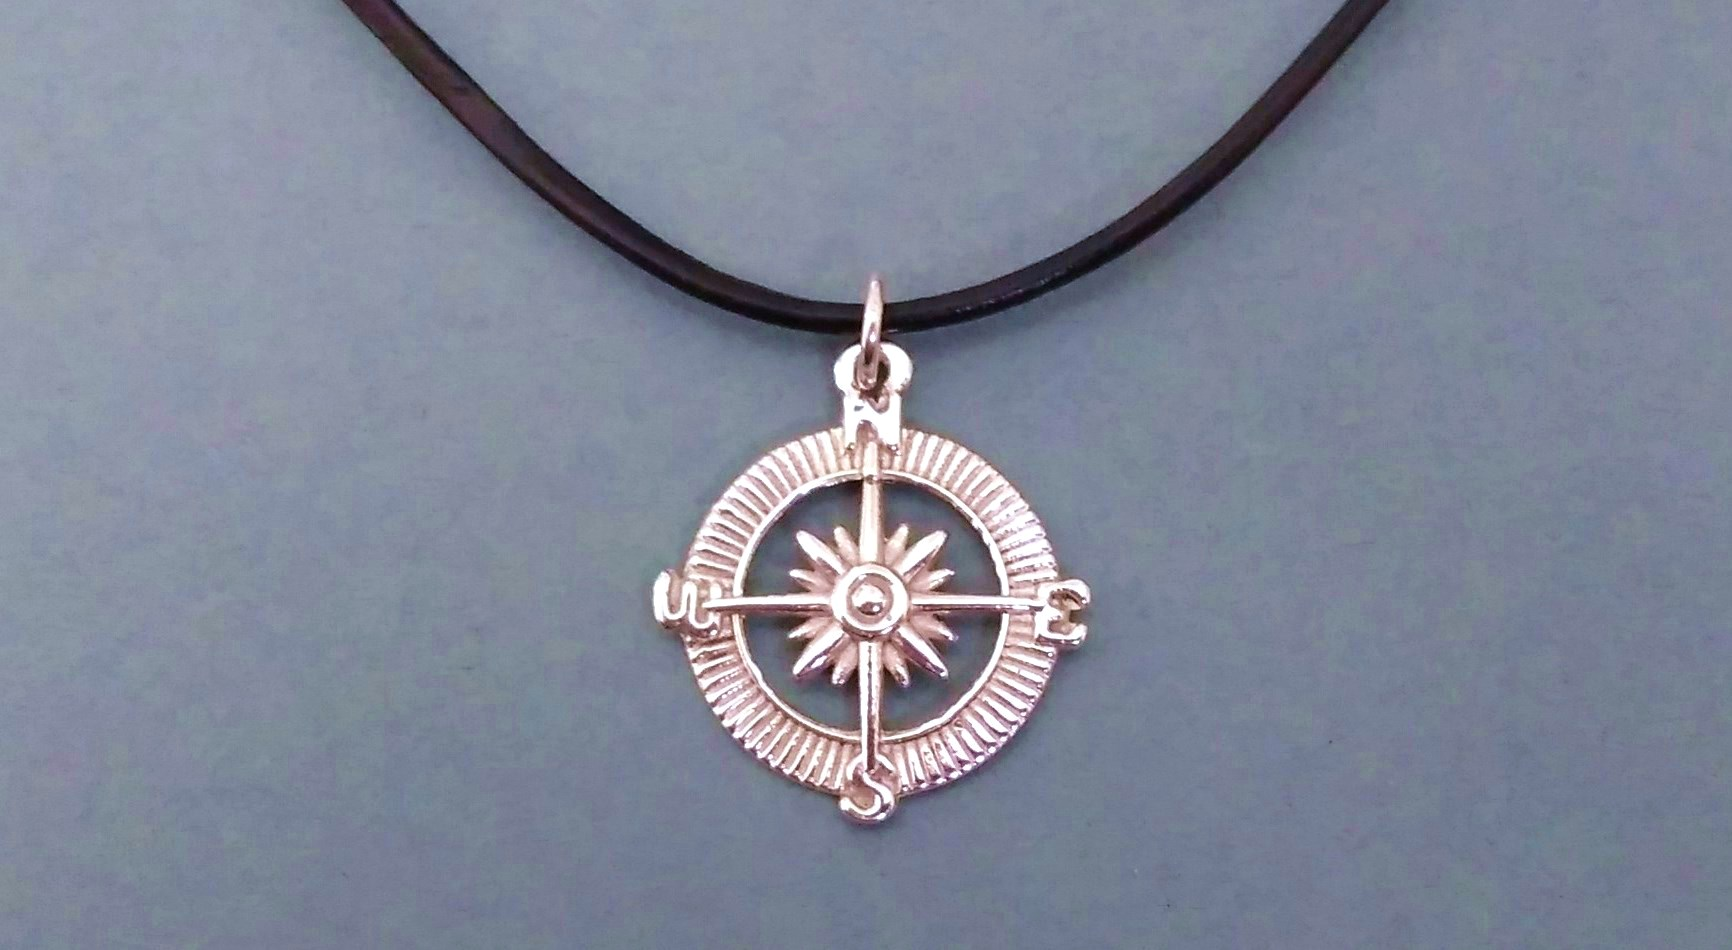 Silver Lighthouse Charm on Black Leather Cord Necklace